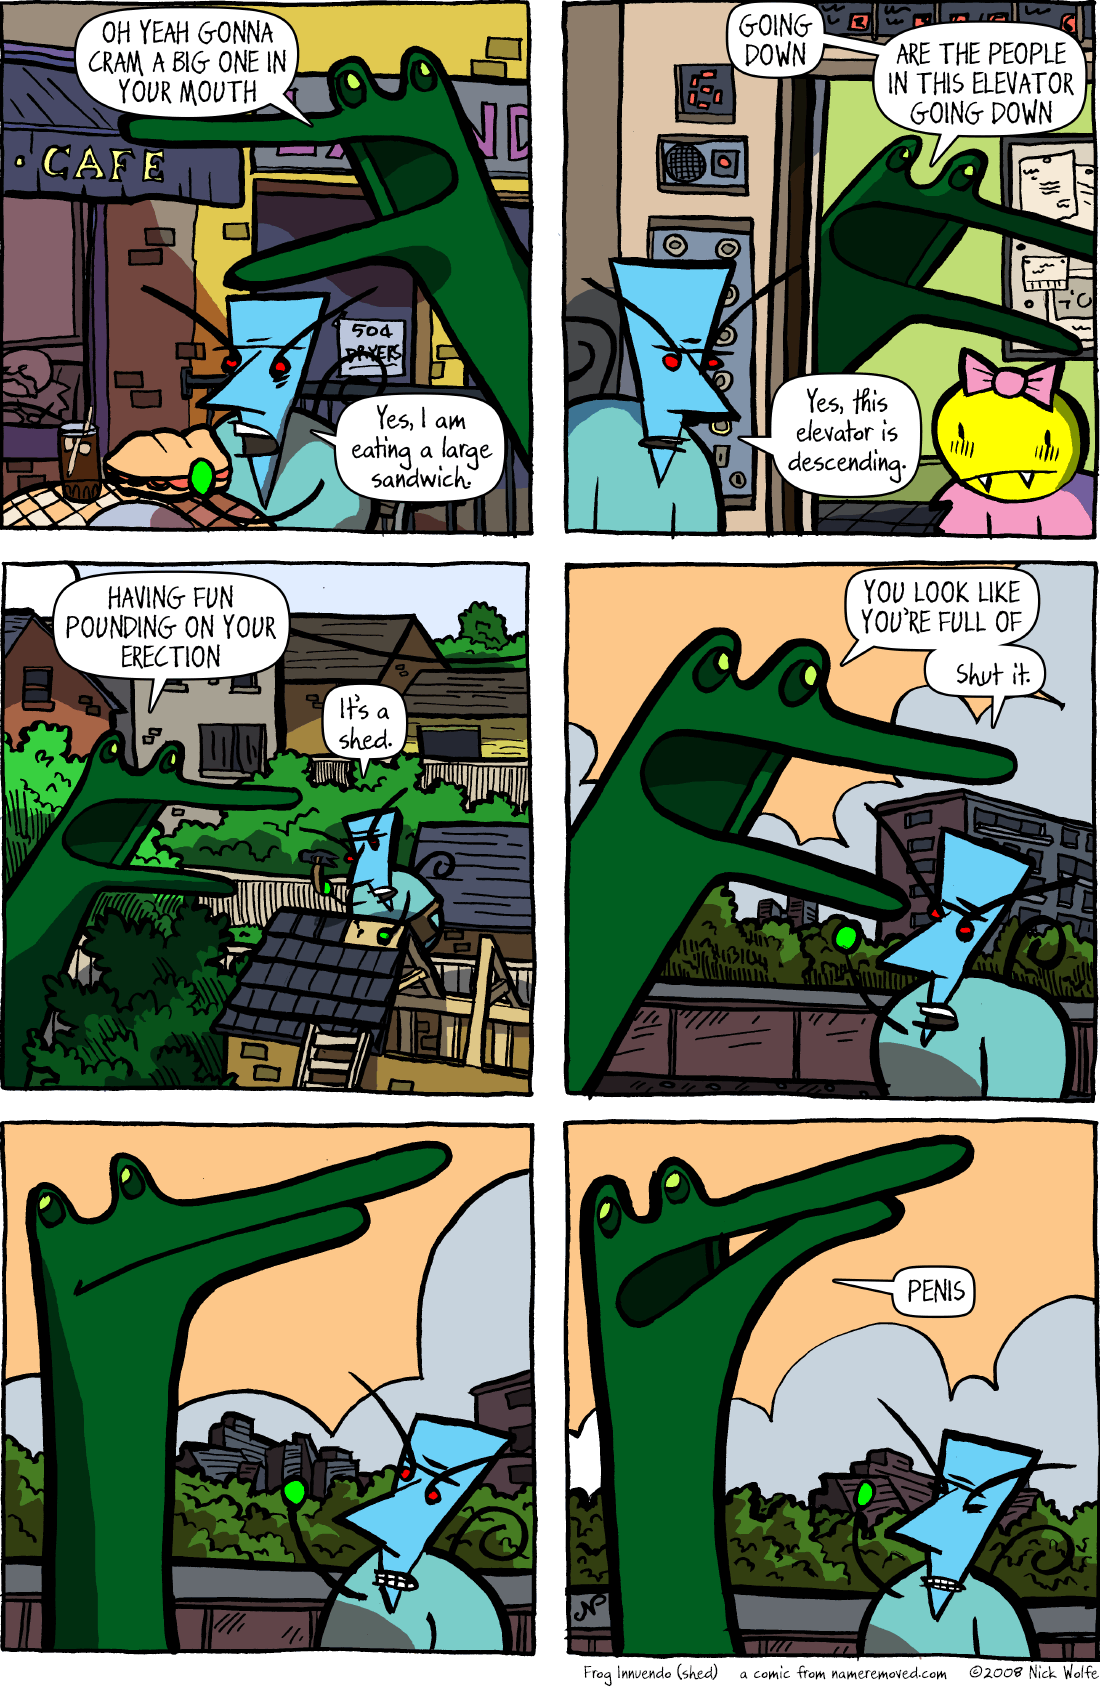 Frog Innuendo (shed)